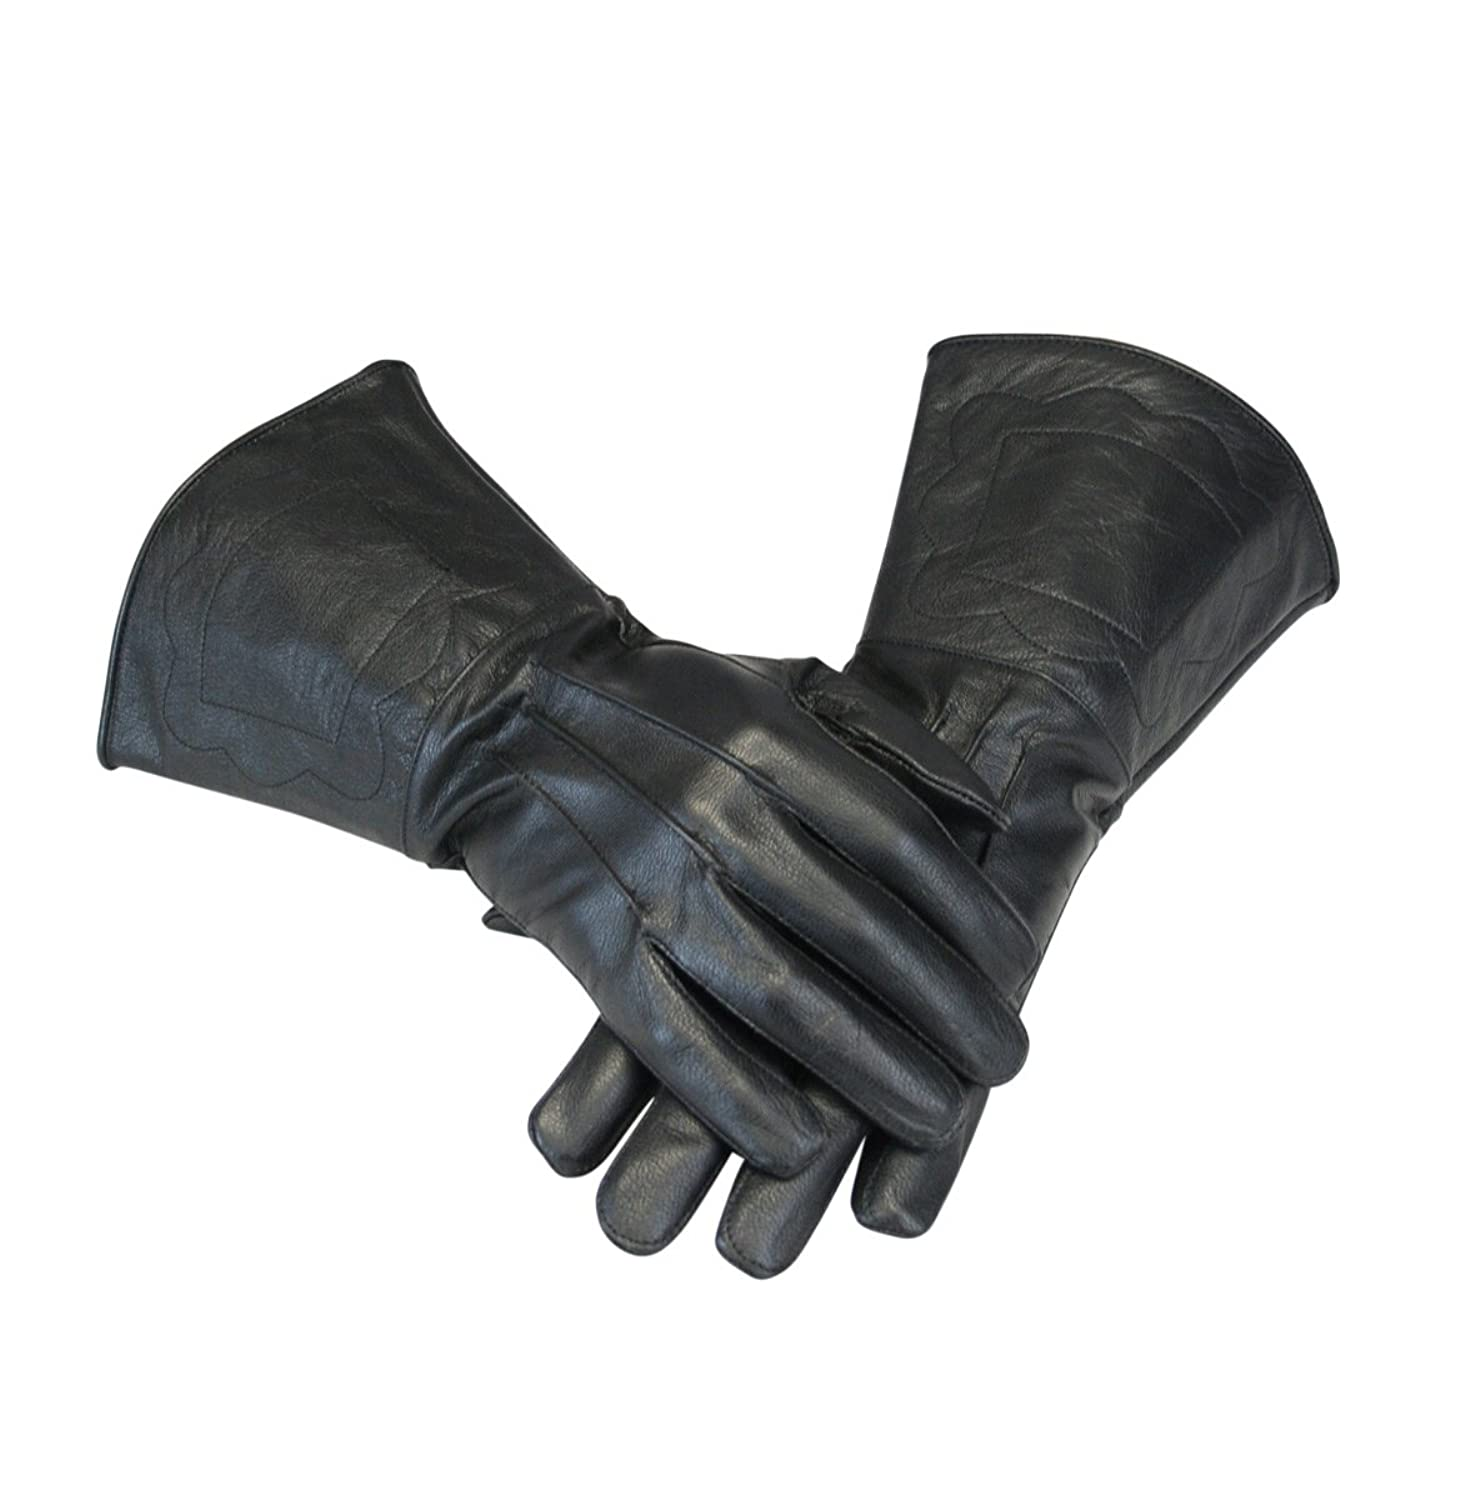 Edwardian Men's Accessories Mens Genuine Leather Gauntlets $40.95 AT vintagedancer.com